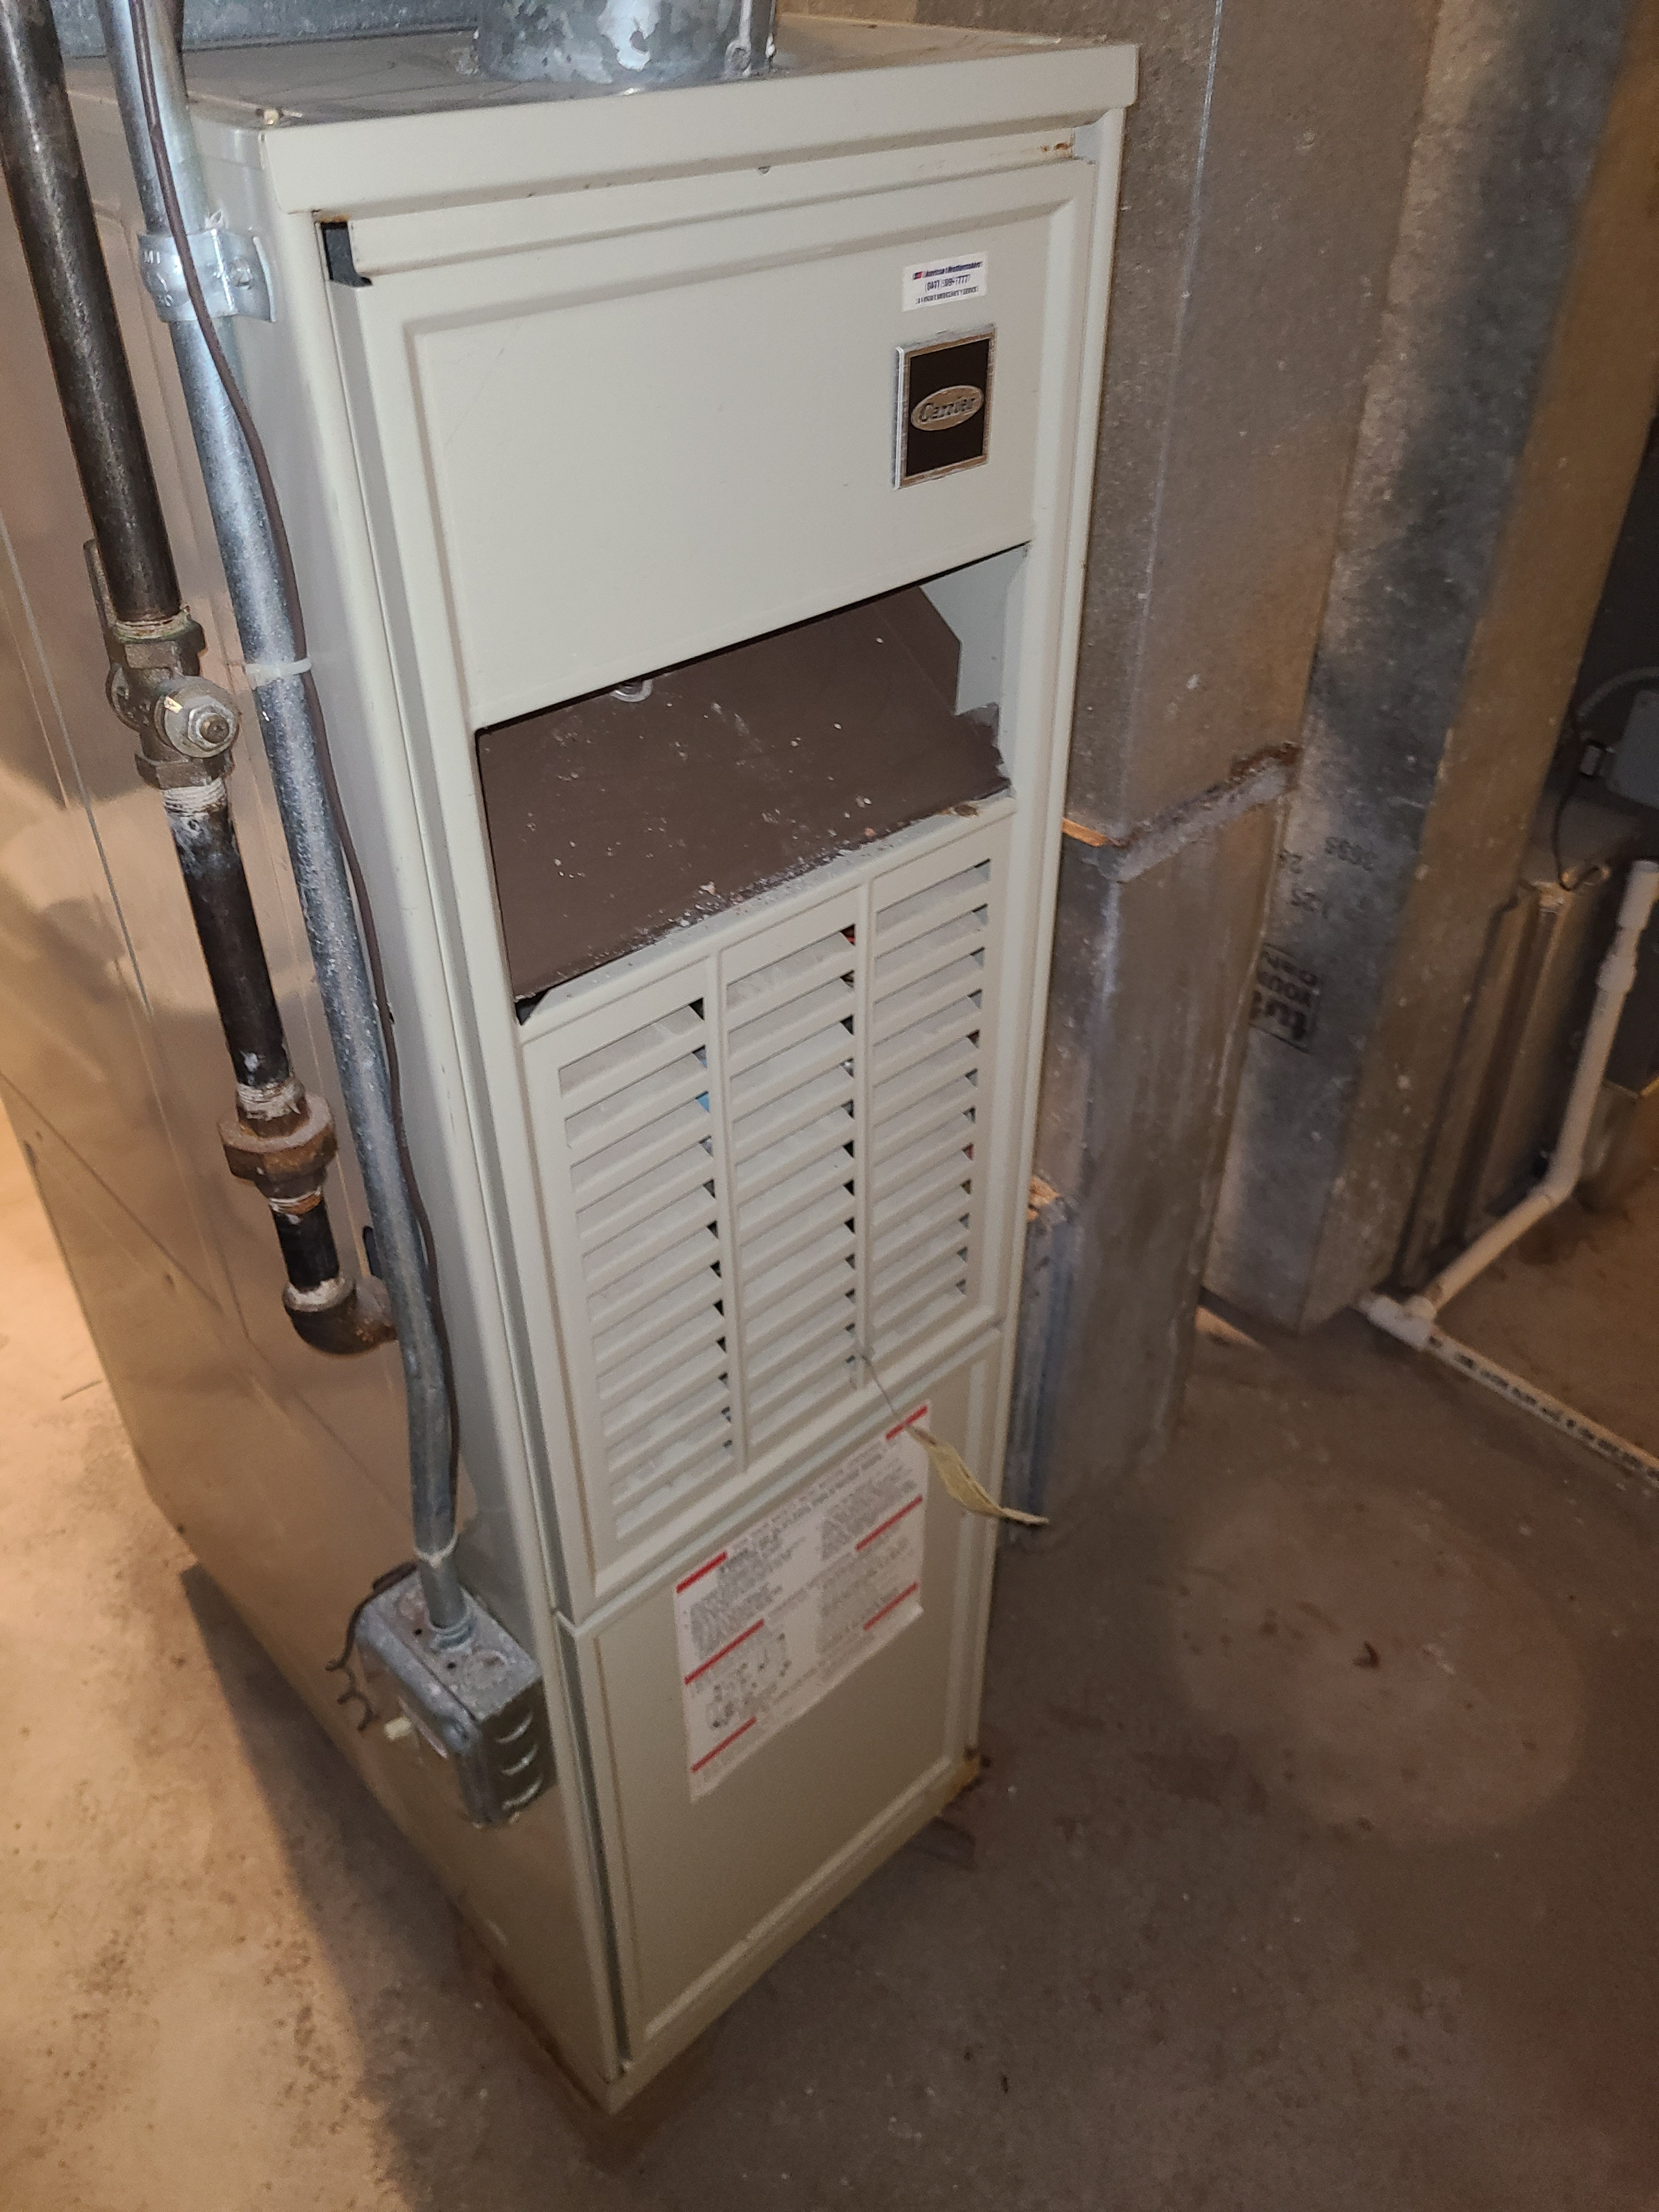 Carrier furnace fall clean and check. System tuned up and ready for winter.